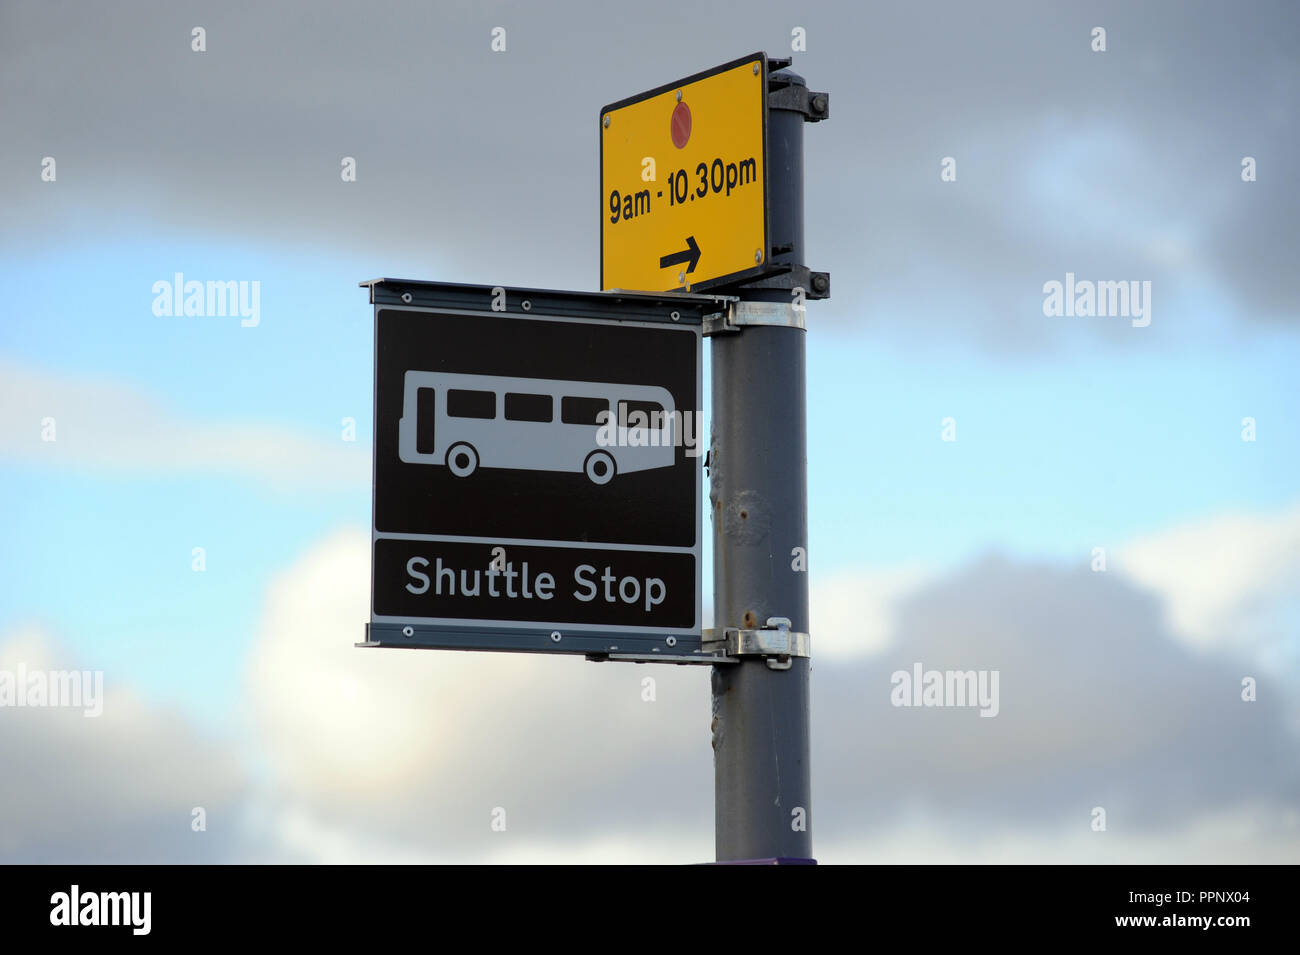 SHUTTLE STOP BUS SIGN WITH PARKING SIGN UK Stock Photo